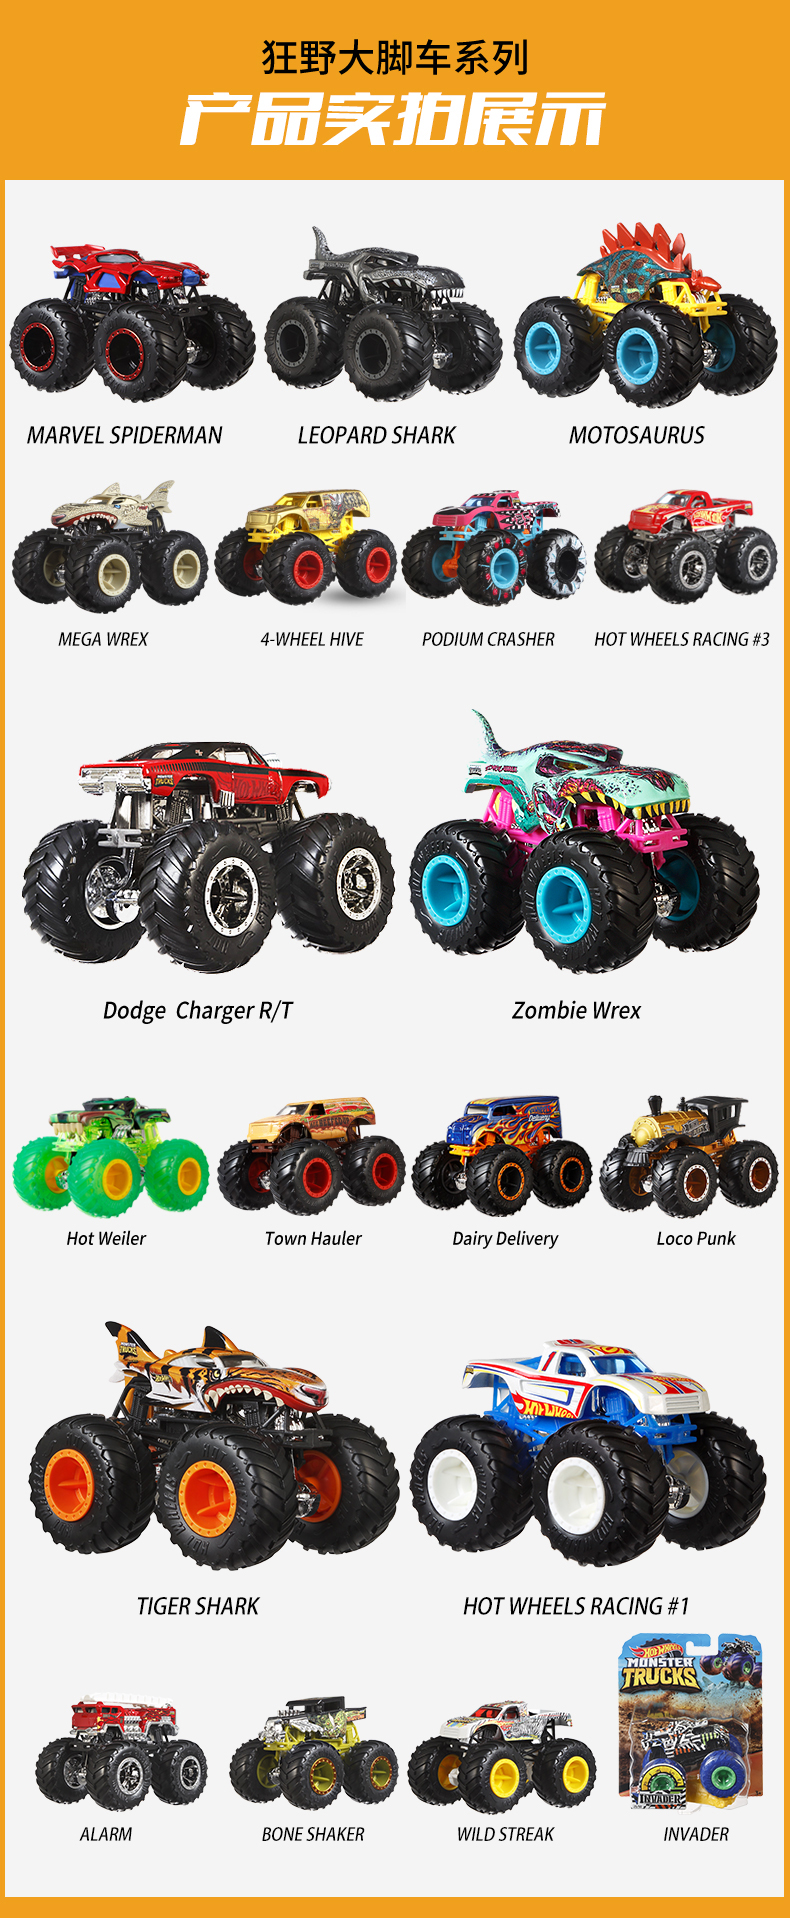 Original 1 64 Hot Wheels Monster Trucks Metal Car Toy Hotwheels Giant Wheels Big Foot Collection Wild Collision Car Toys Fyj44 Hot Wheels Aliexpress